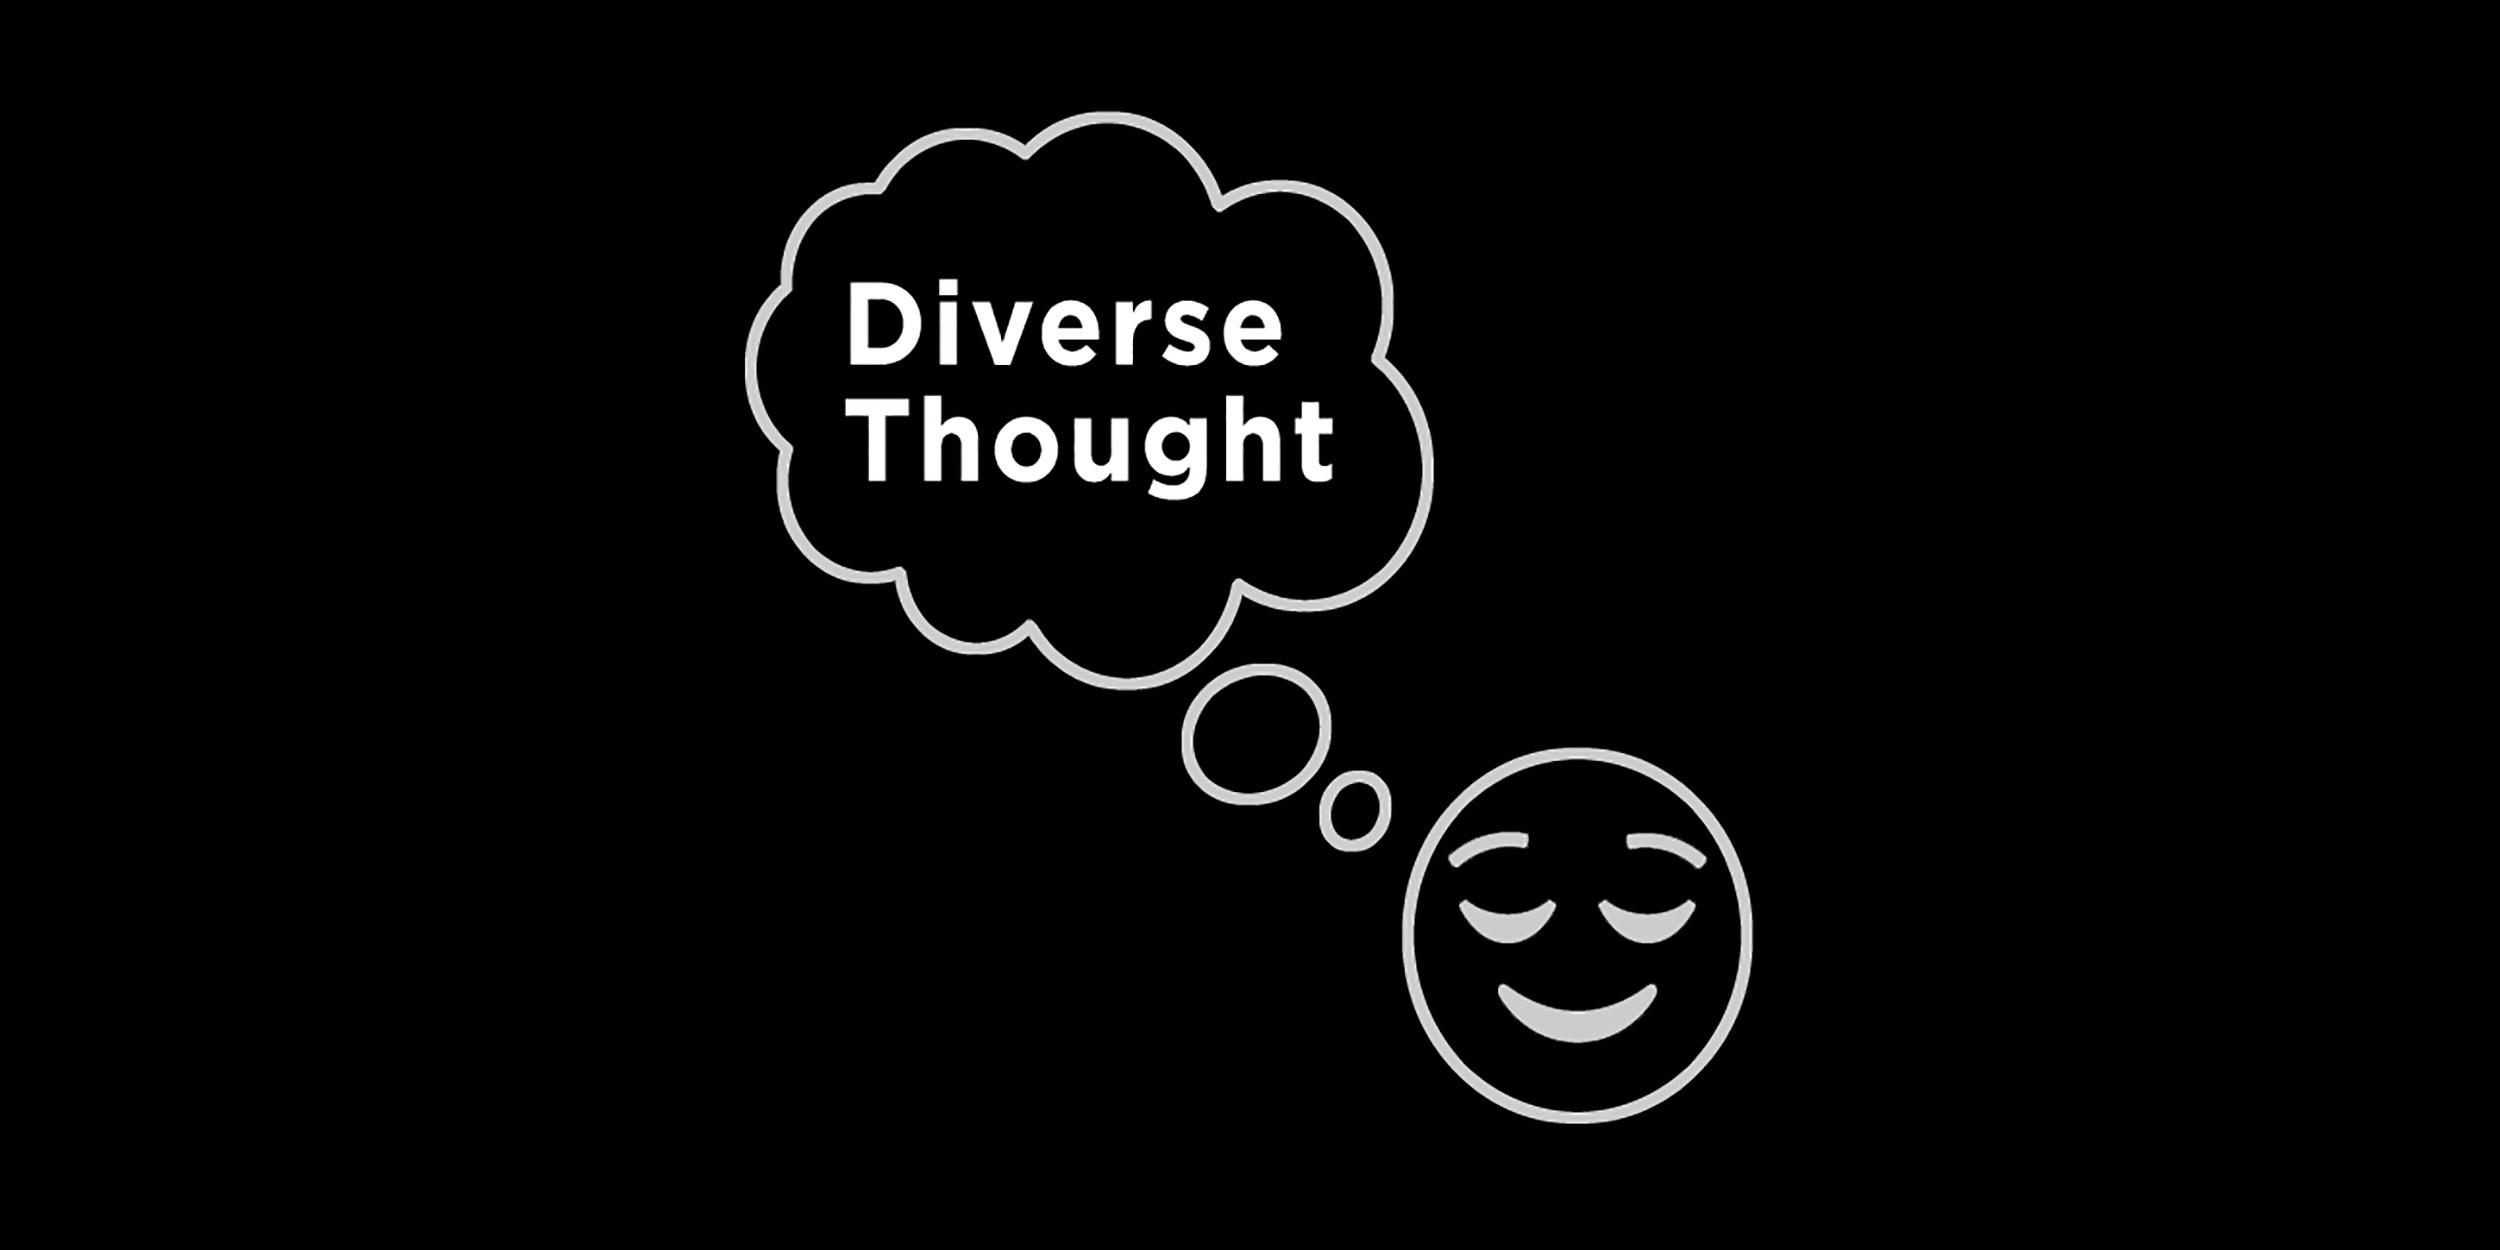 Graphic of a smiley face thinking about 'Diverse Thought' for Renee Ure's article on the value of 'Diversity of Thought' in business.